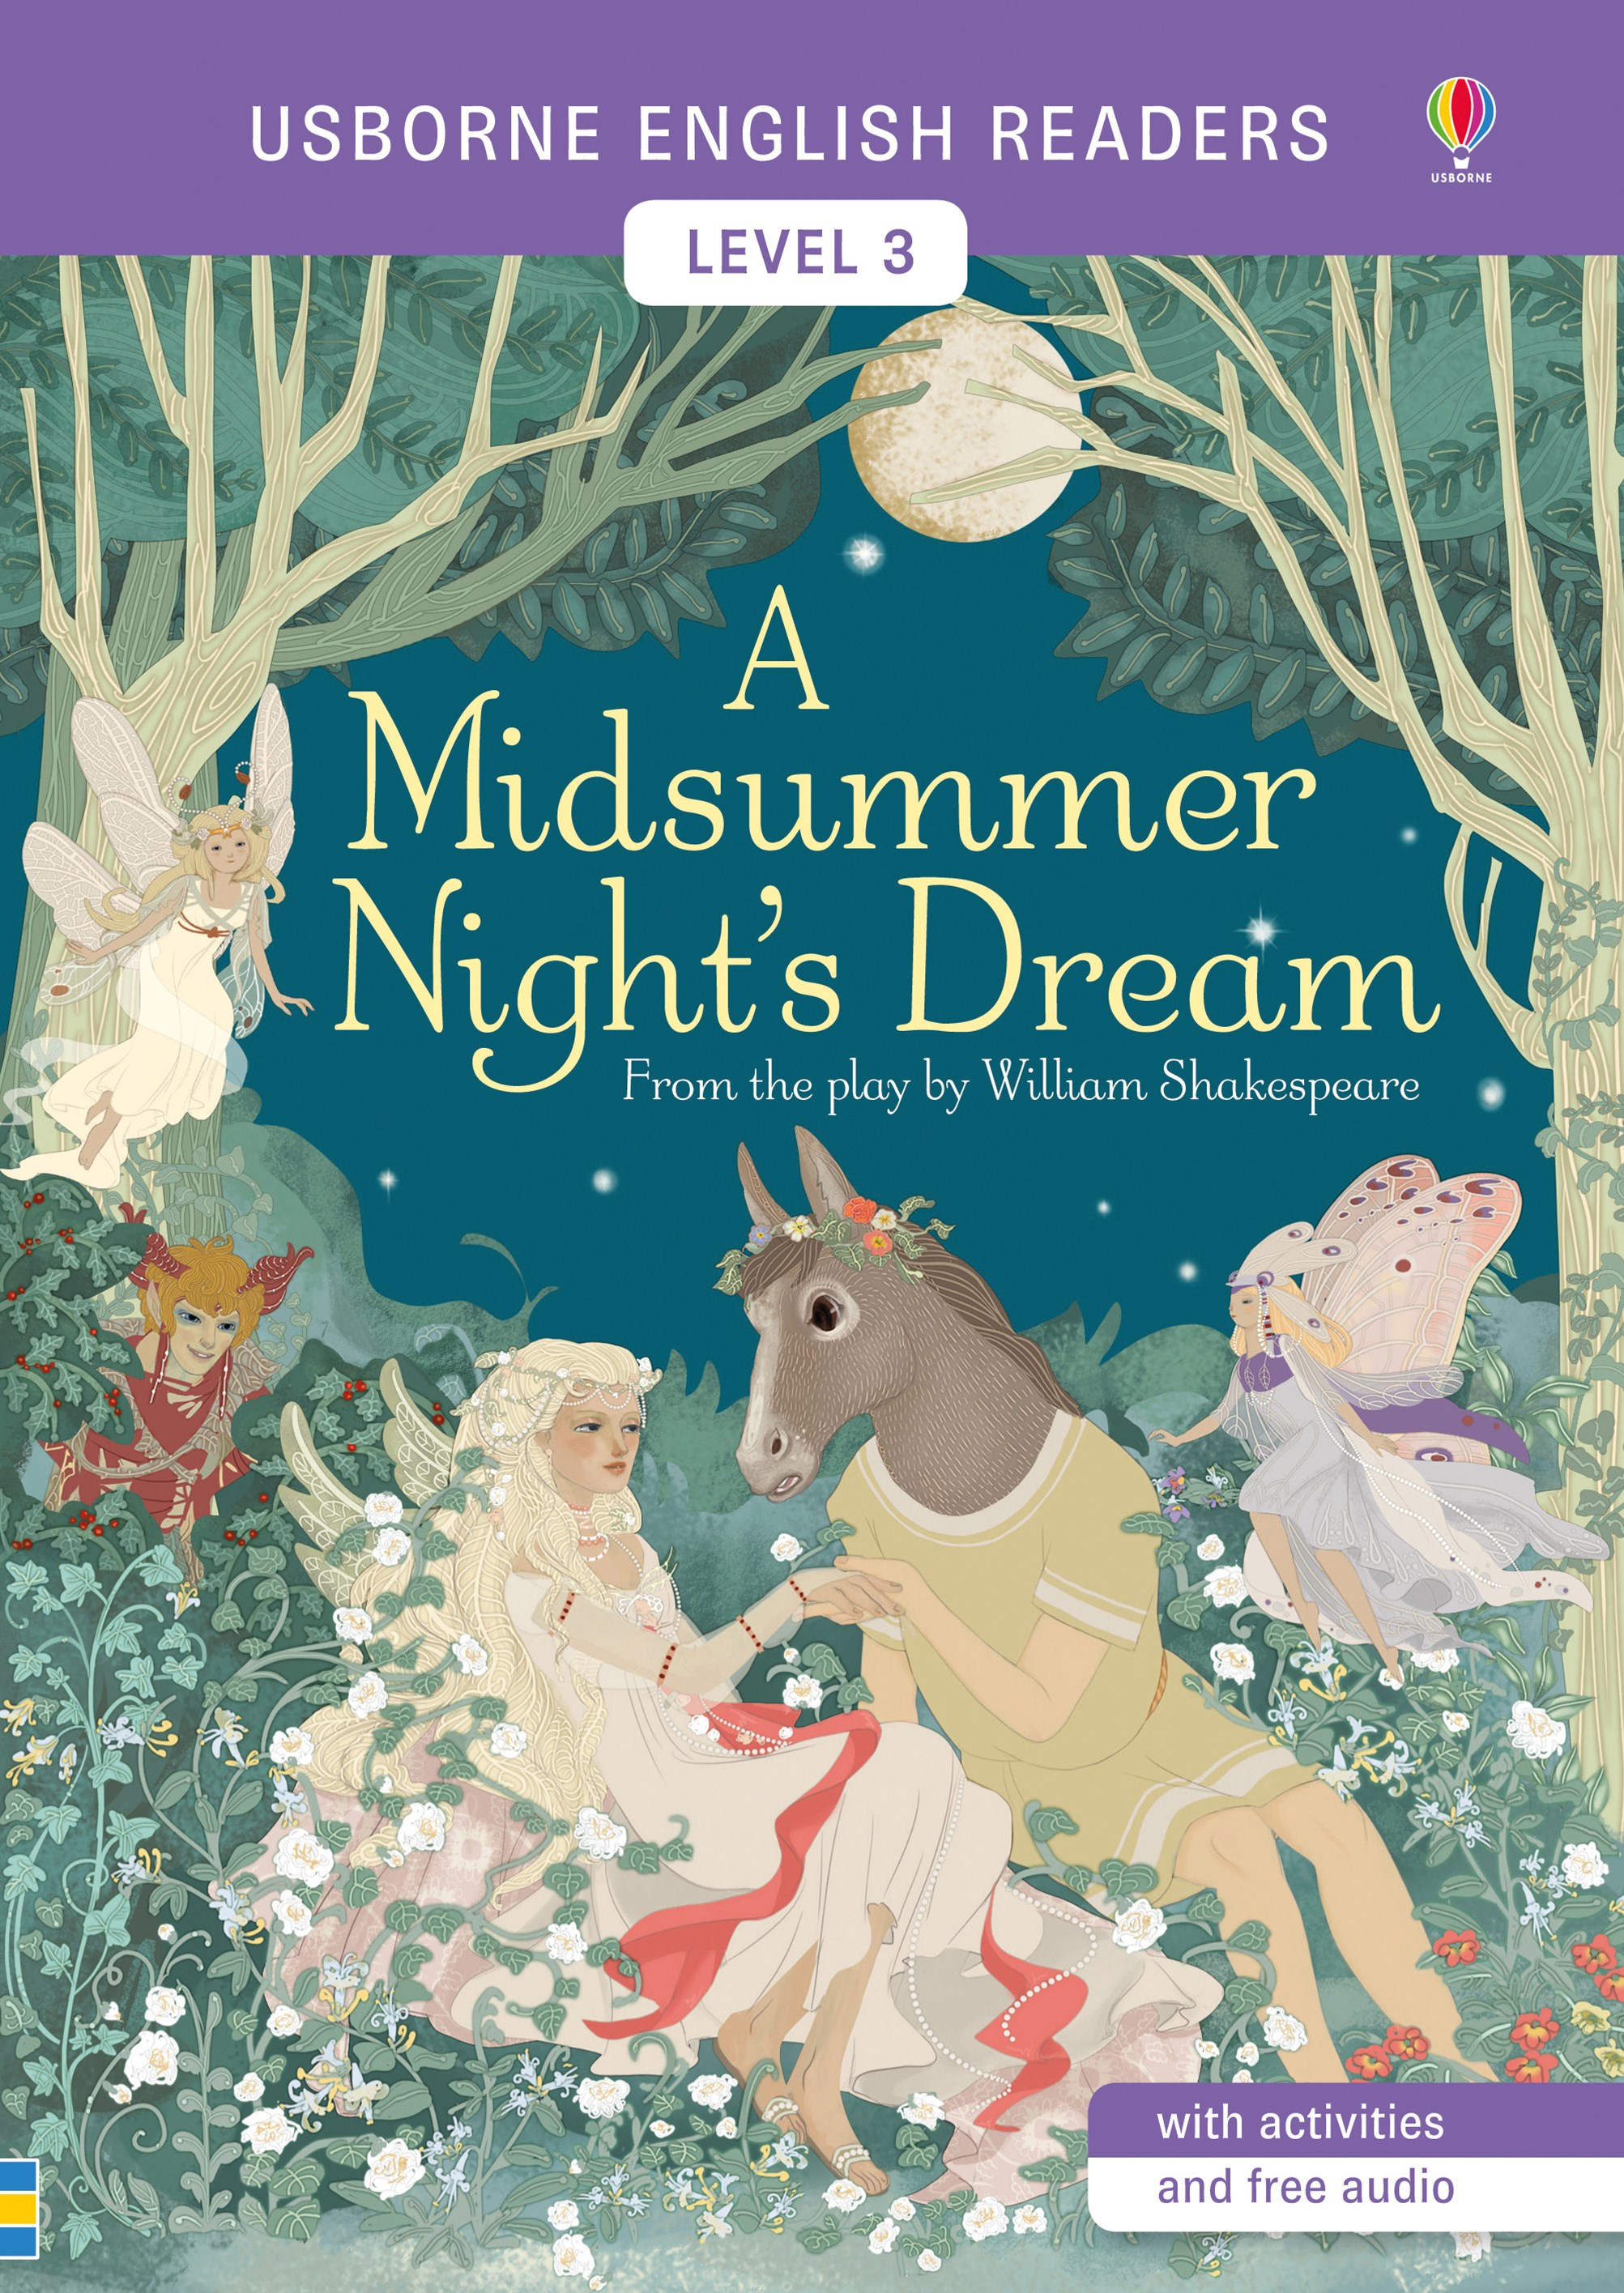 Usborne English Readers: A Midsummer Night's Dream